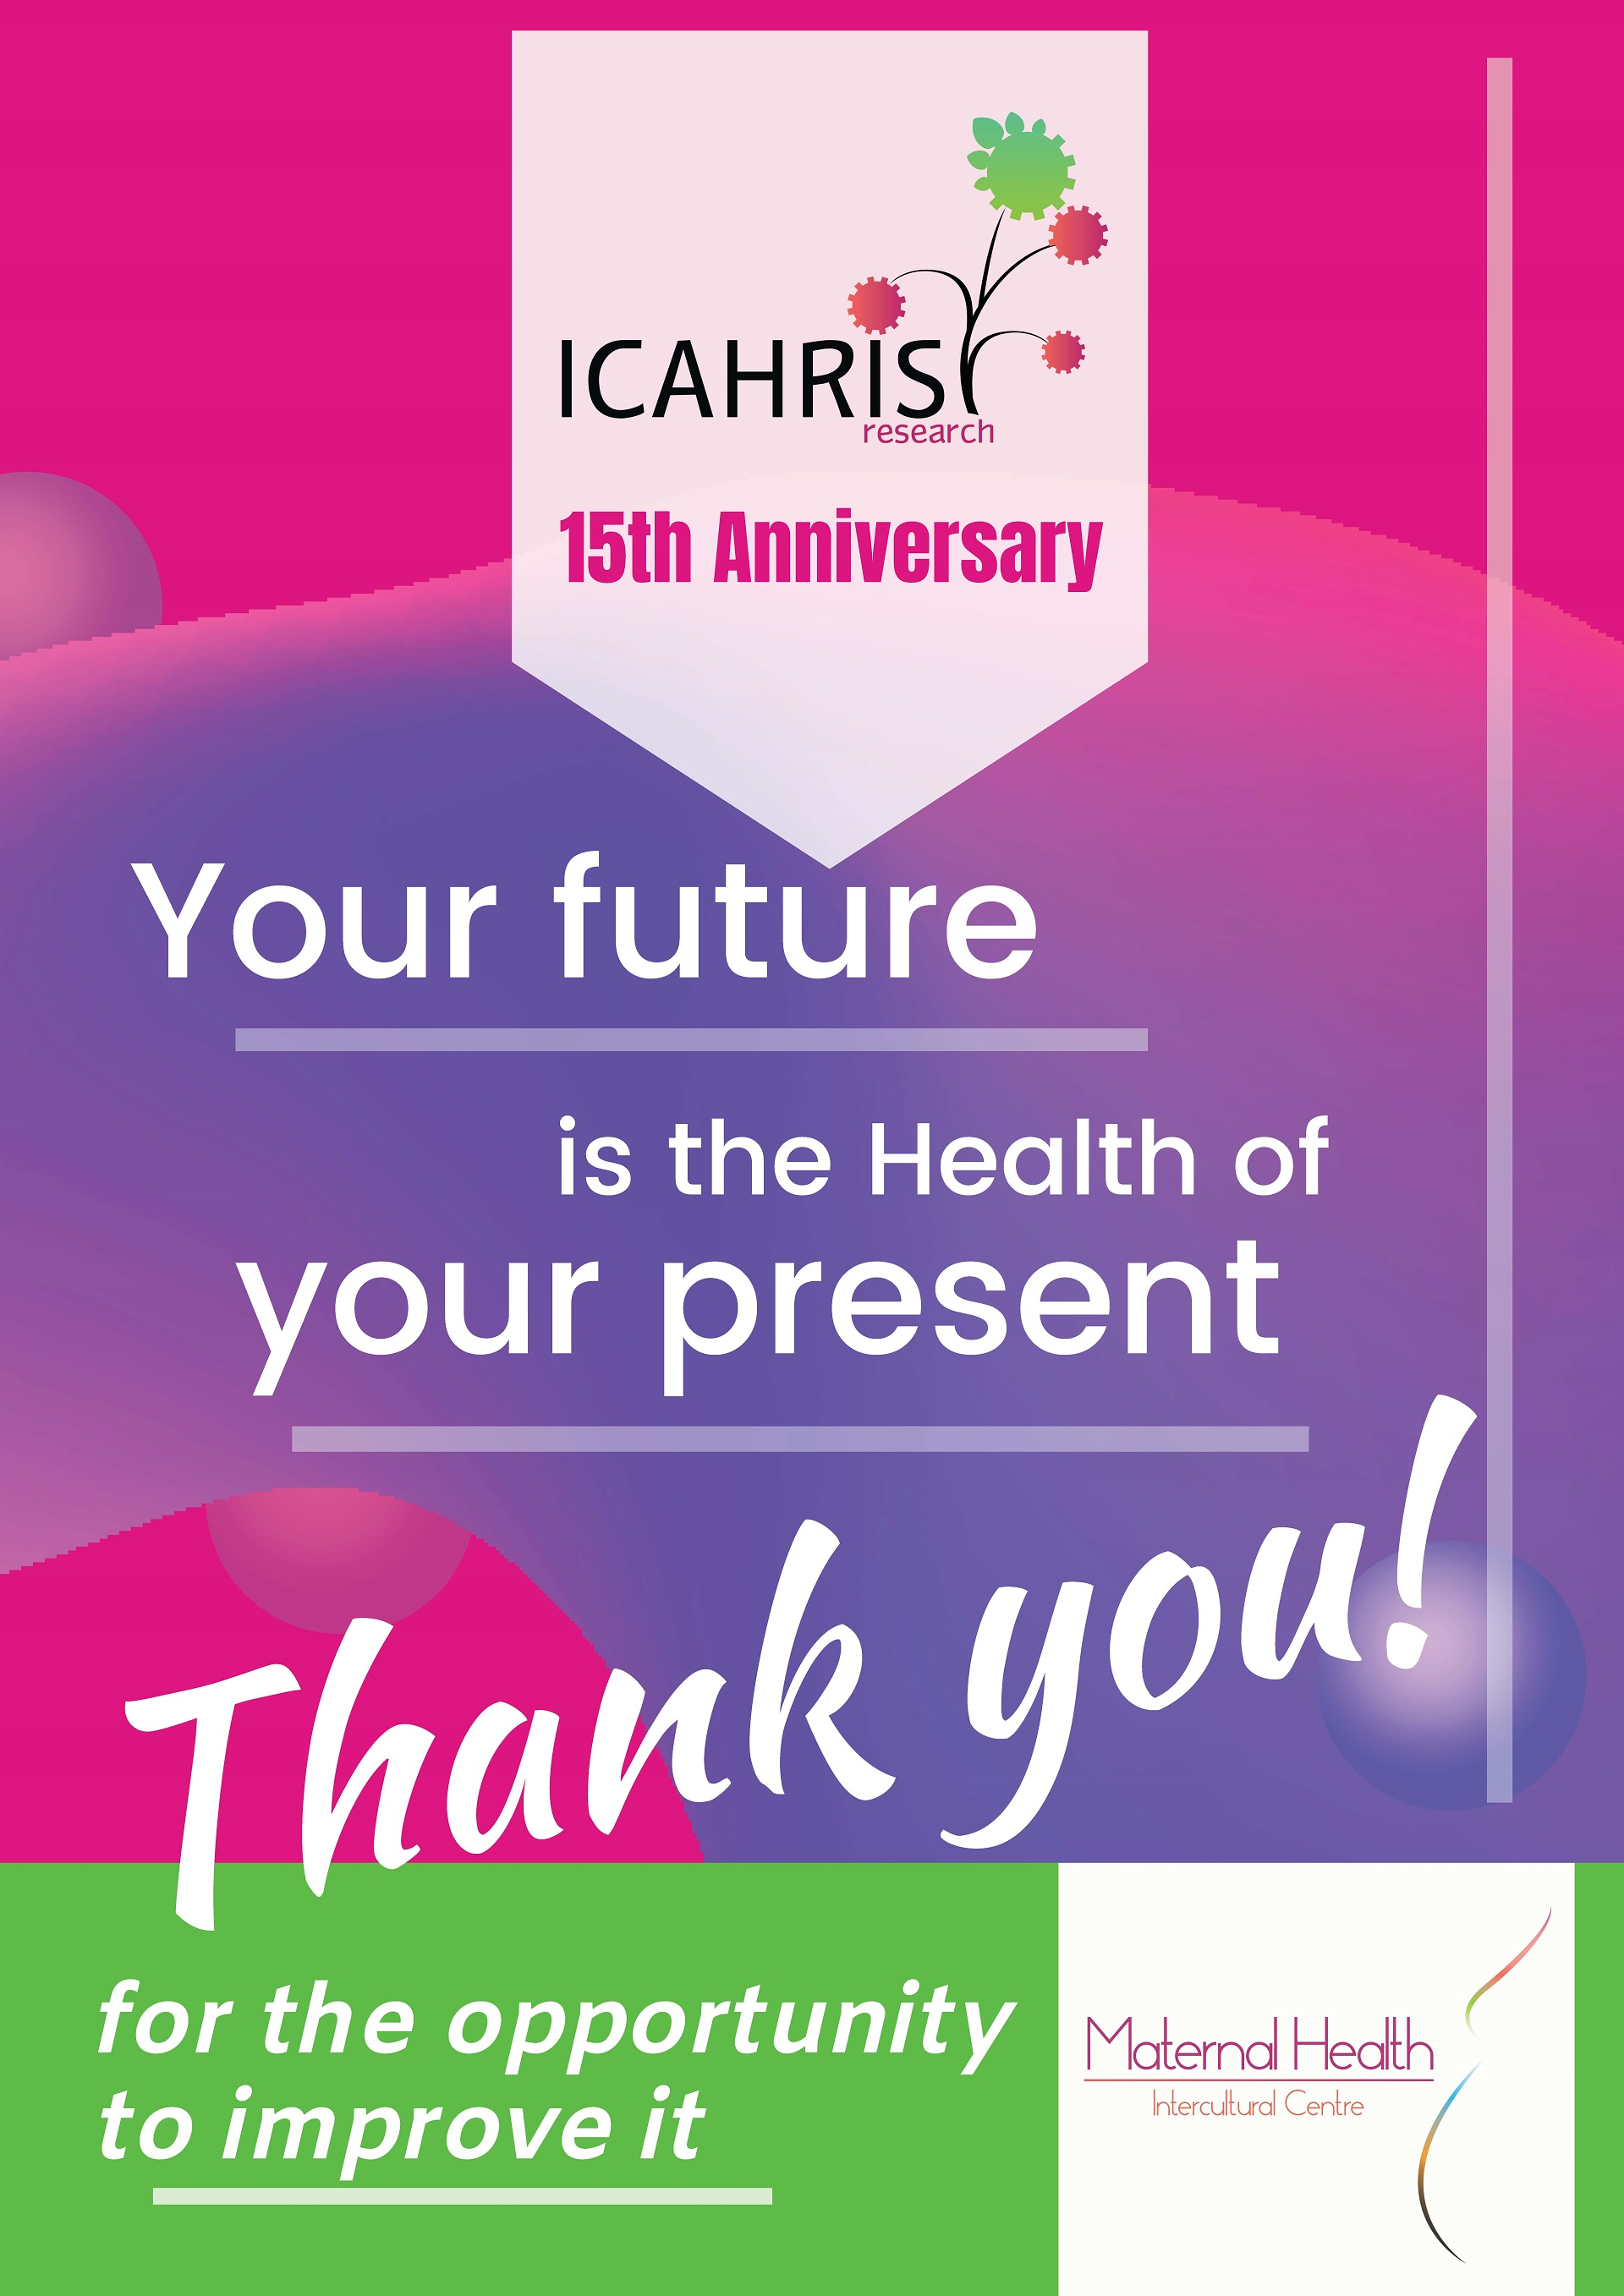 ICAHRIS 15th Anniversary